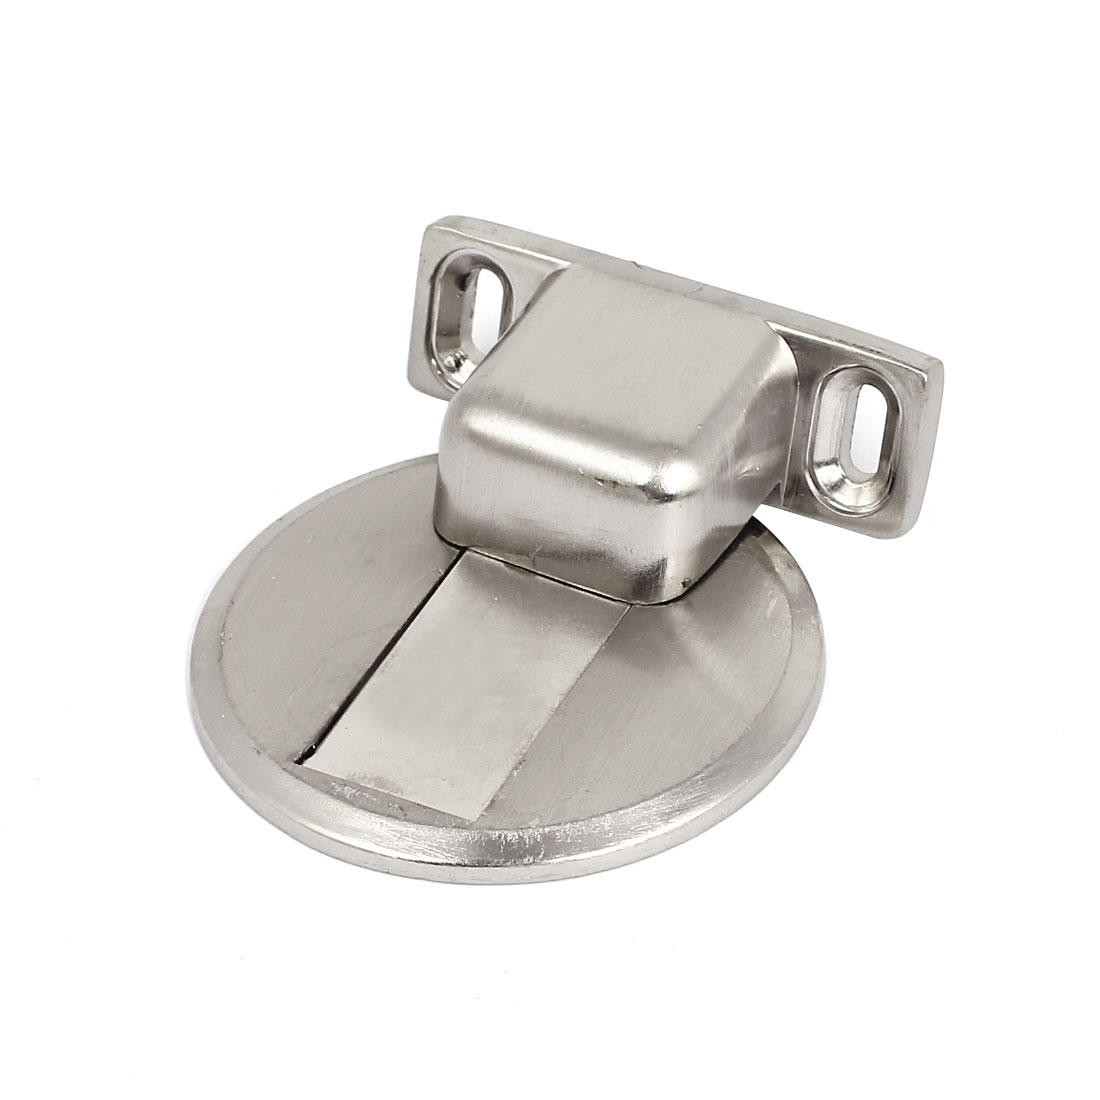 Home Office Stainless Steel Magnetic Door Stop Stopper Catch Silver Tone